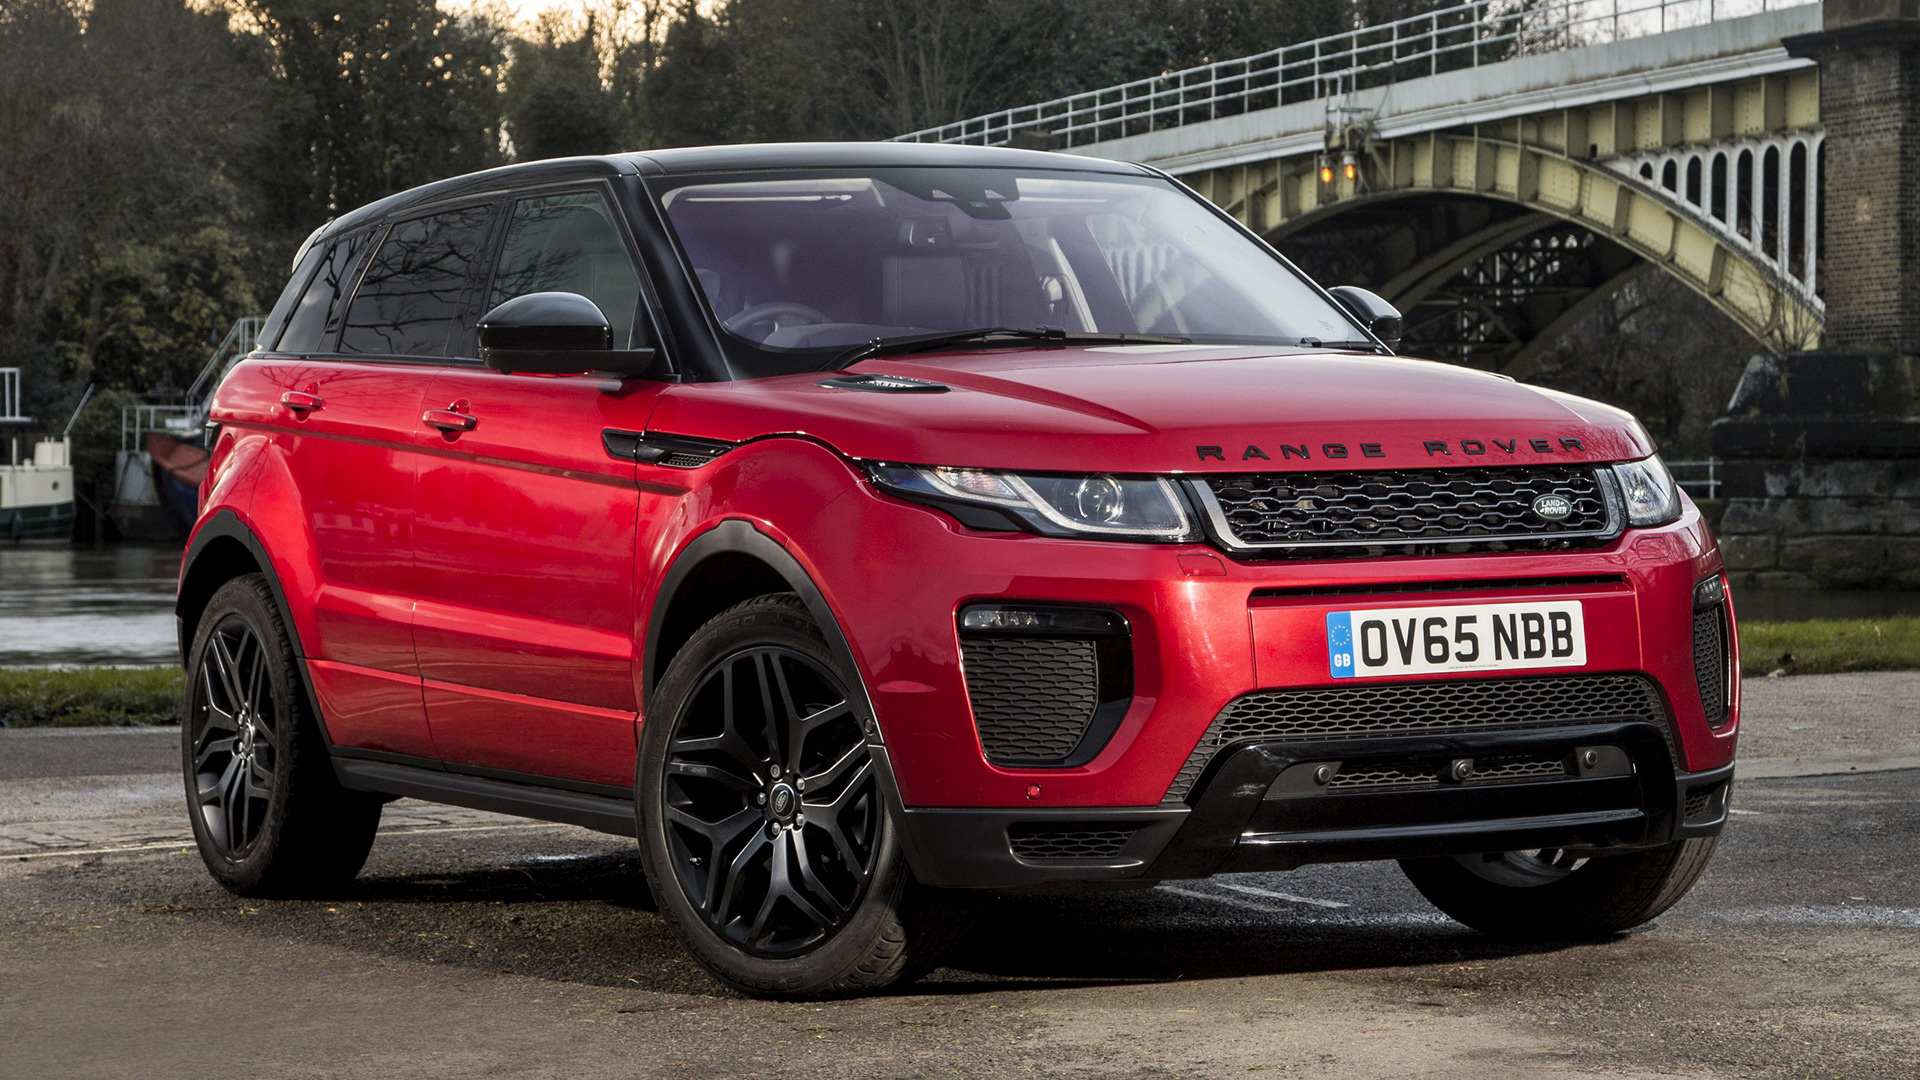 Range Rover Evoque Dynamic 2015 Uk Wallpapers And Hd